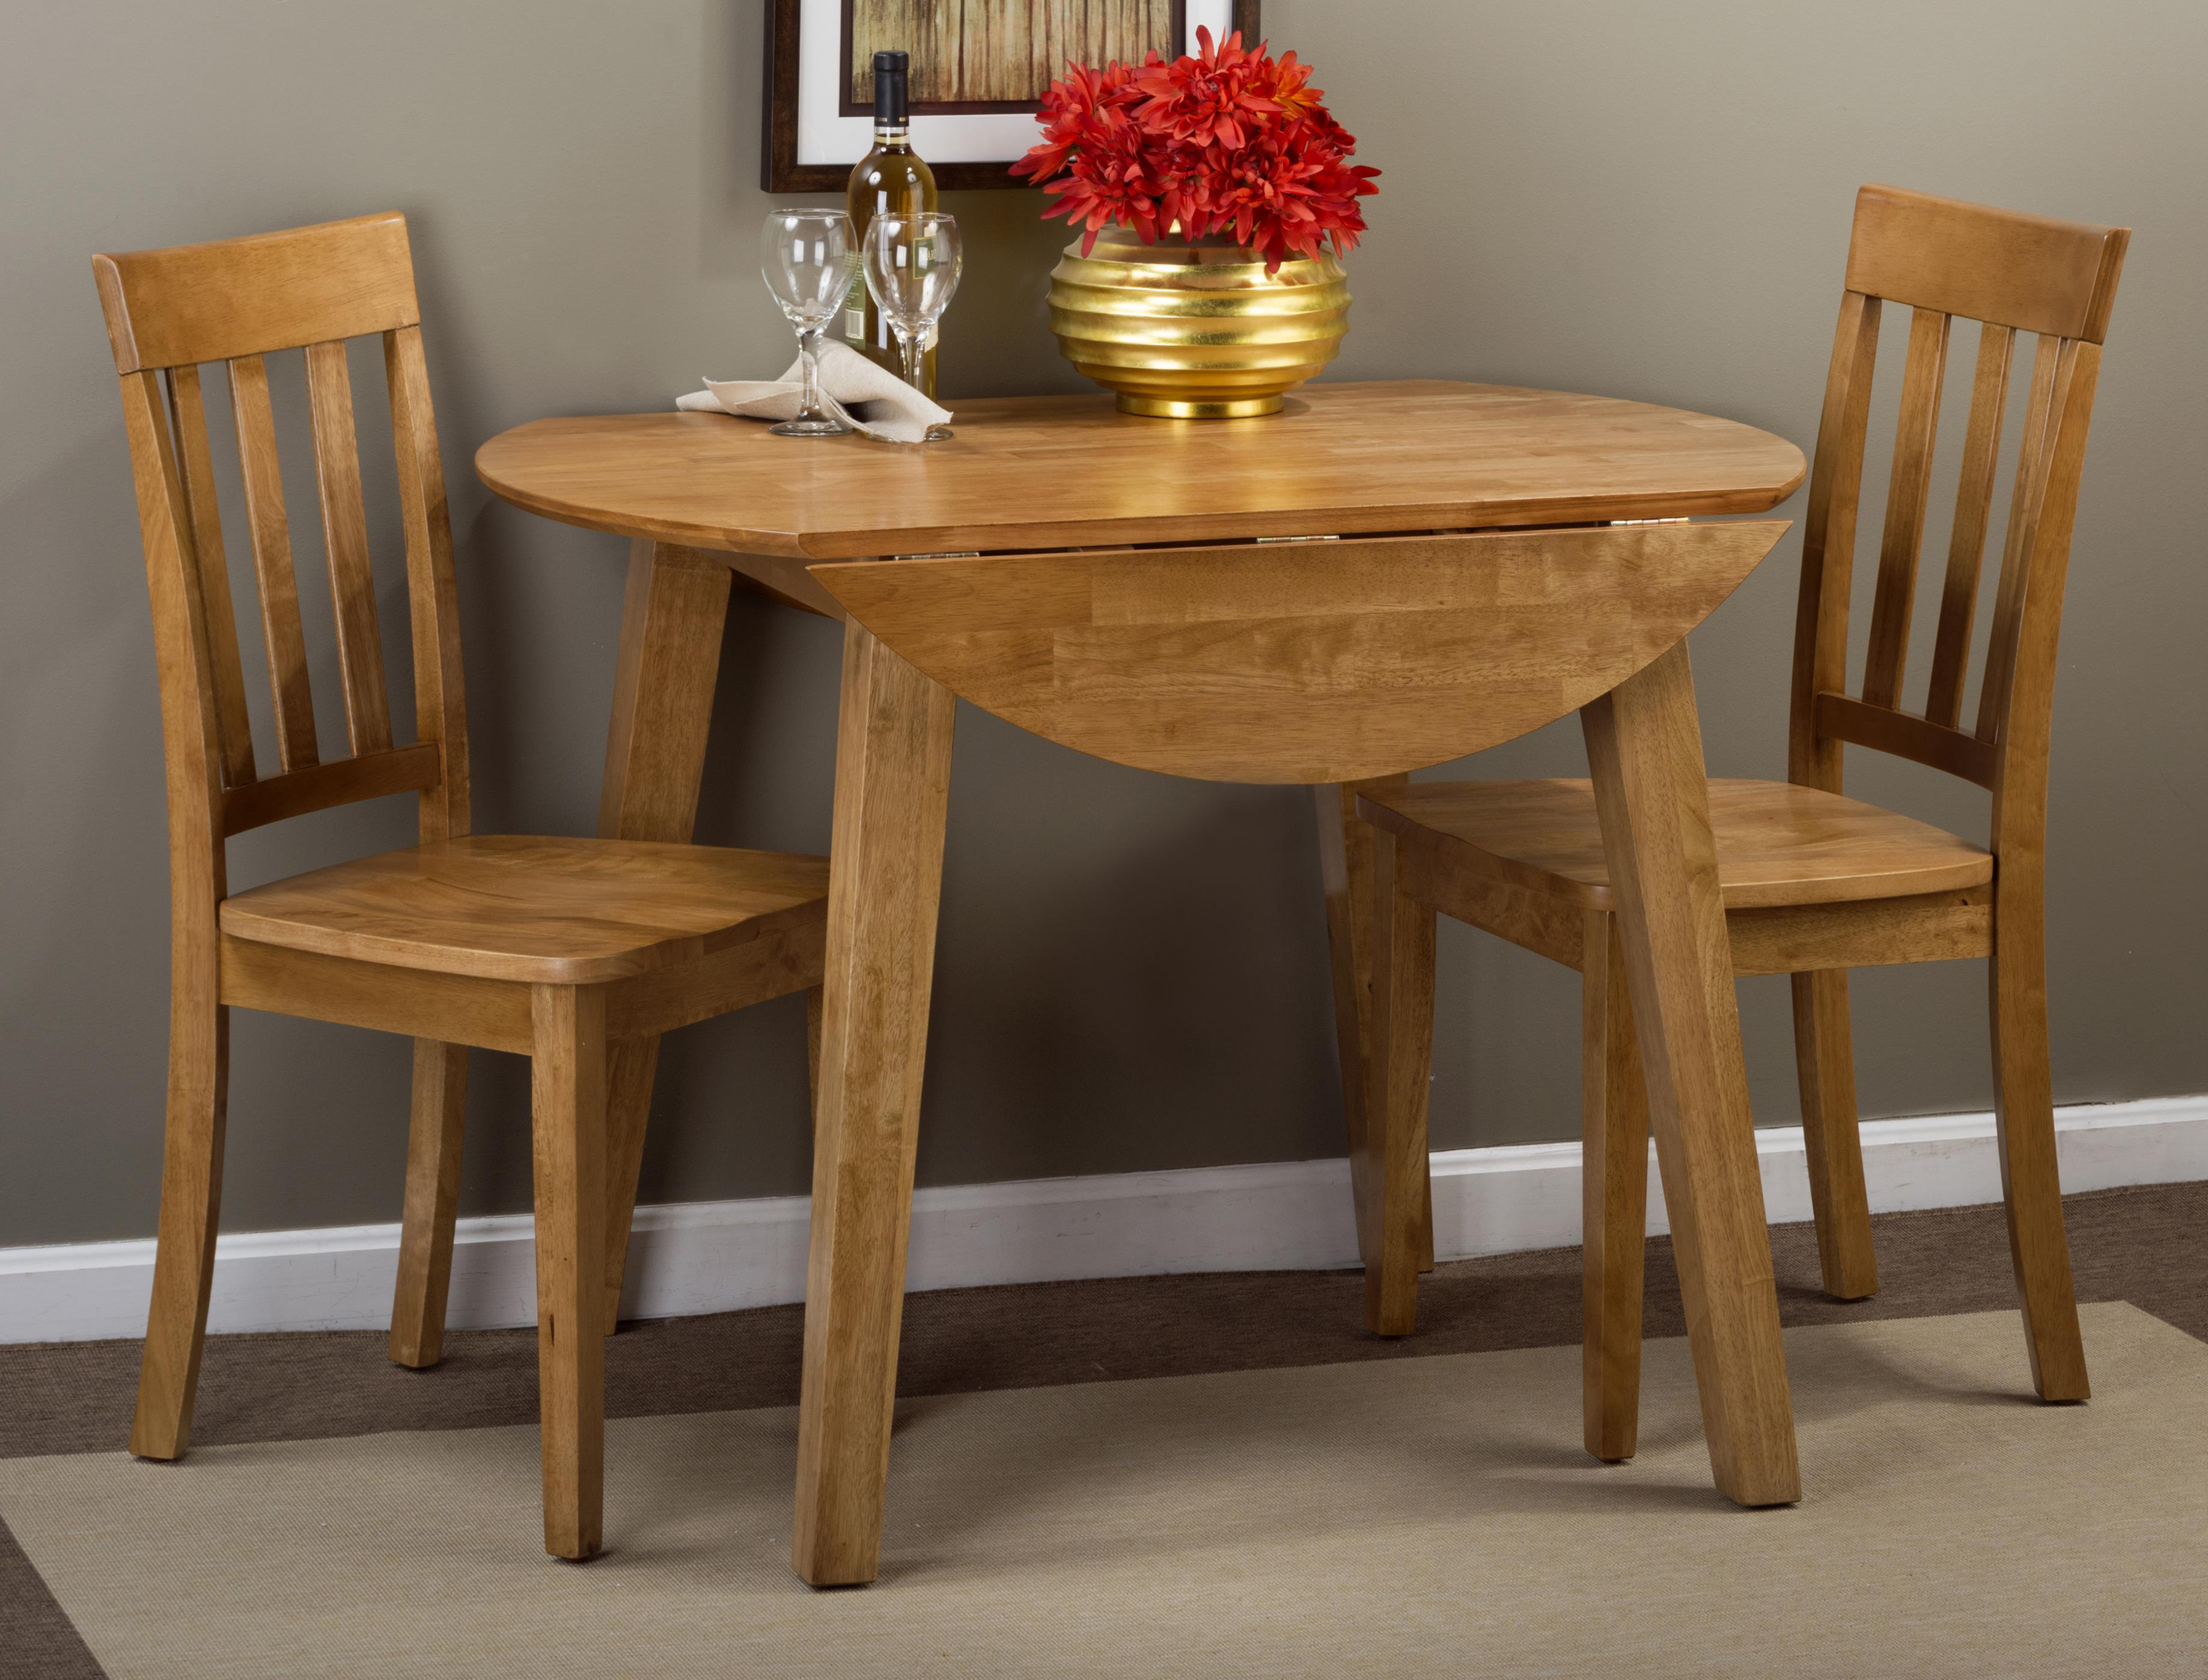 Drop Leaf Table Dining: Round Drop Leaf Table That Seats 4 For Dining Areas By